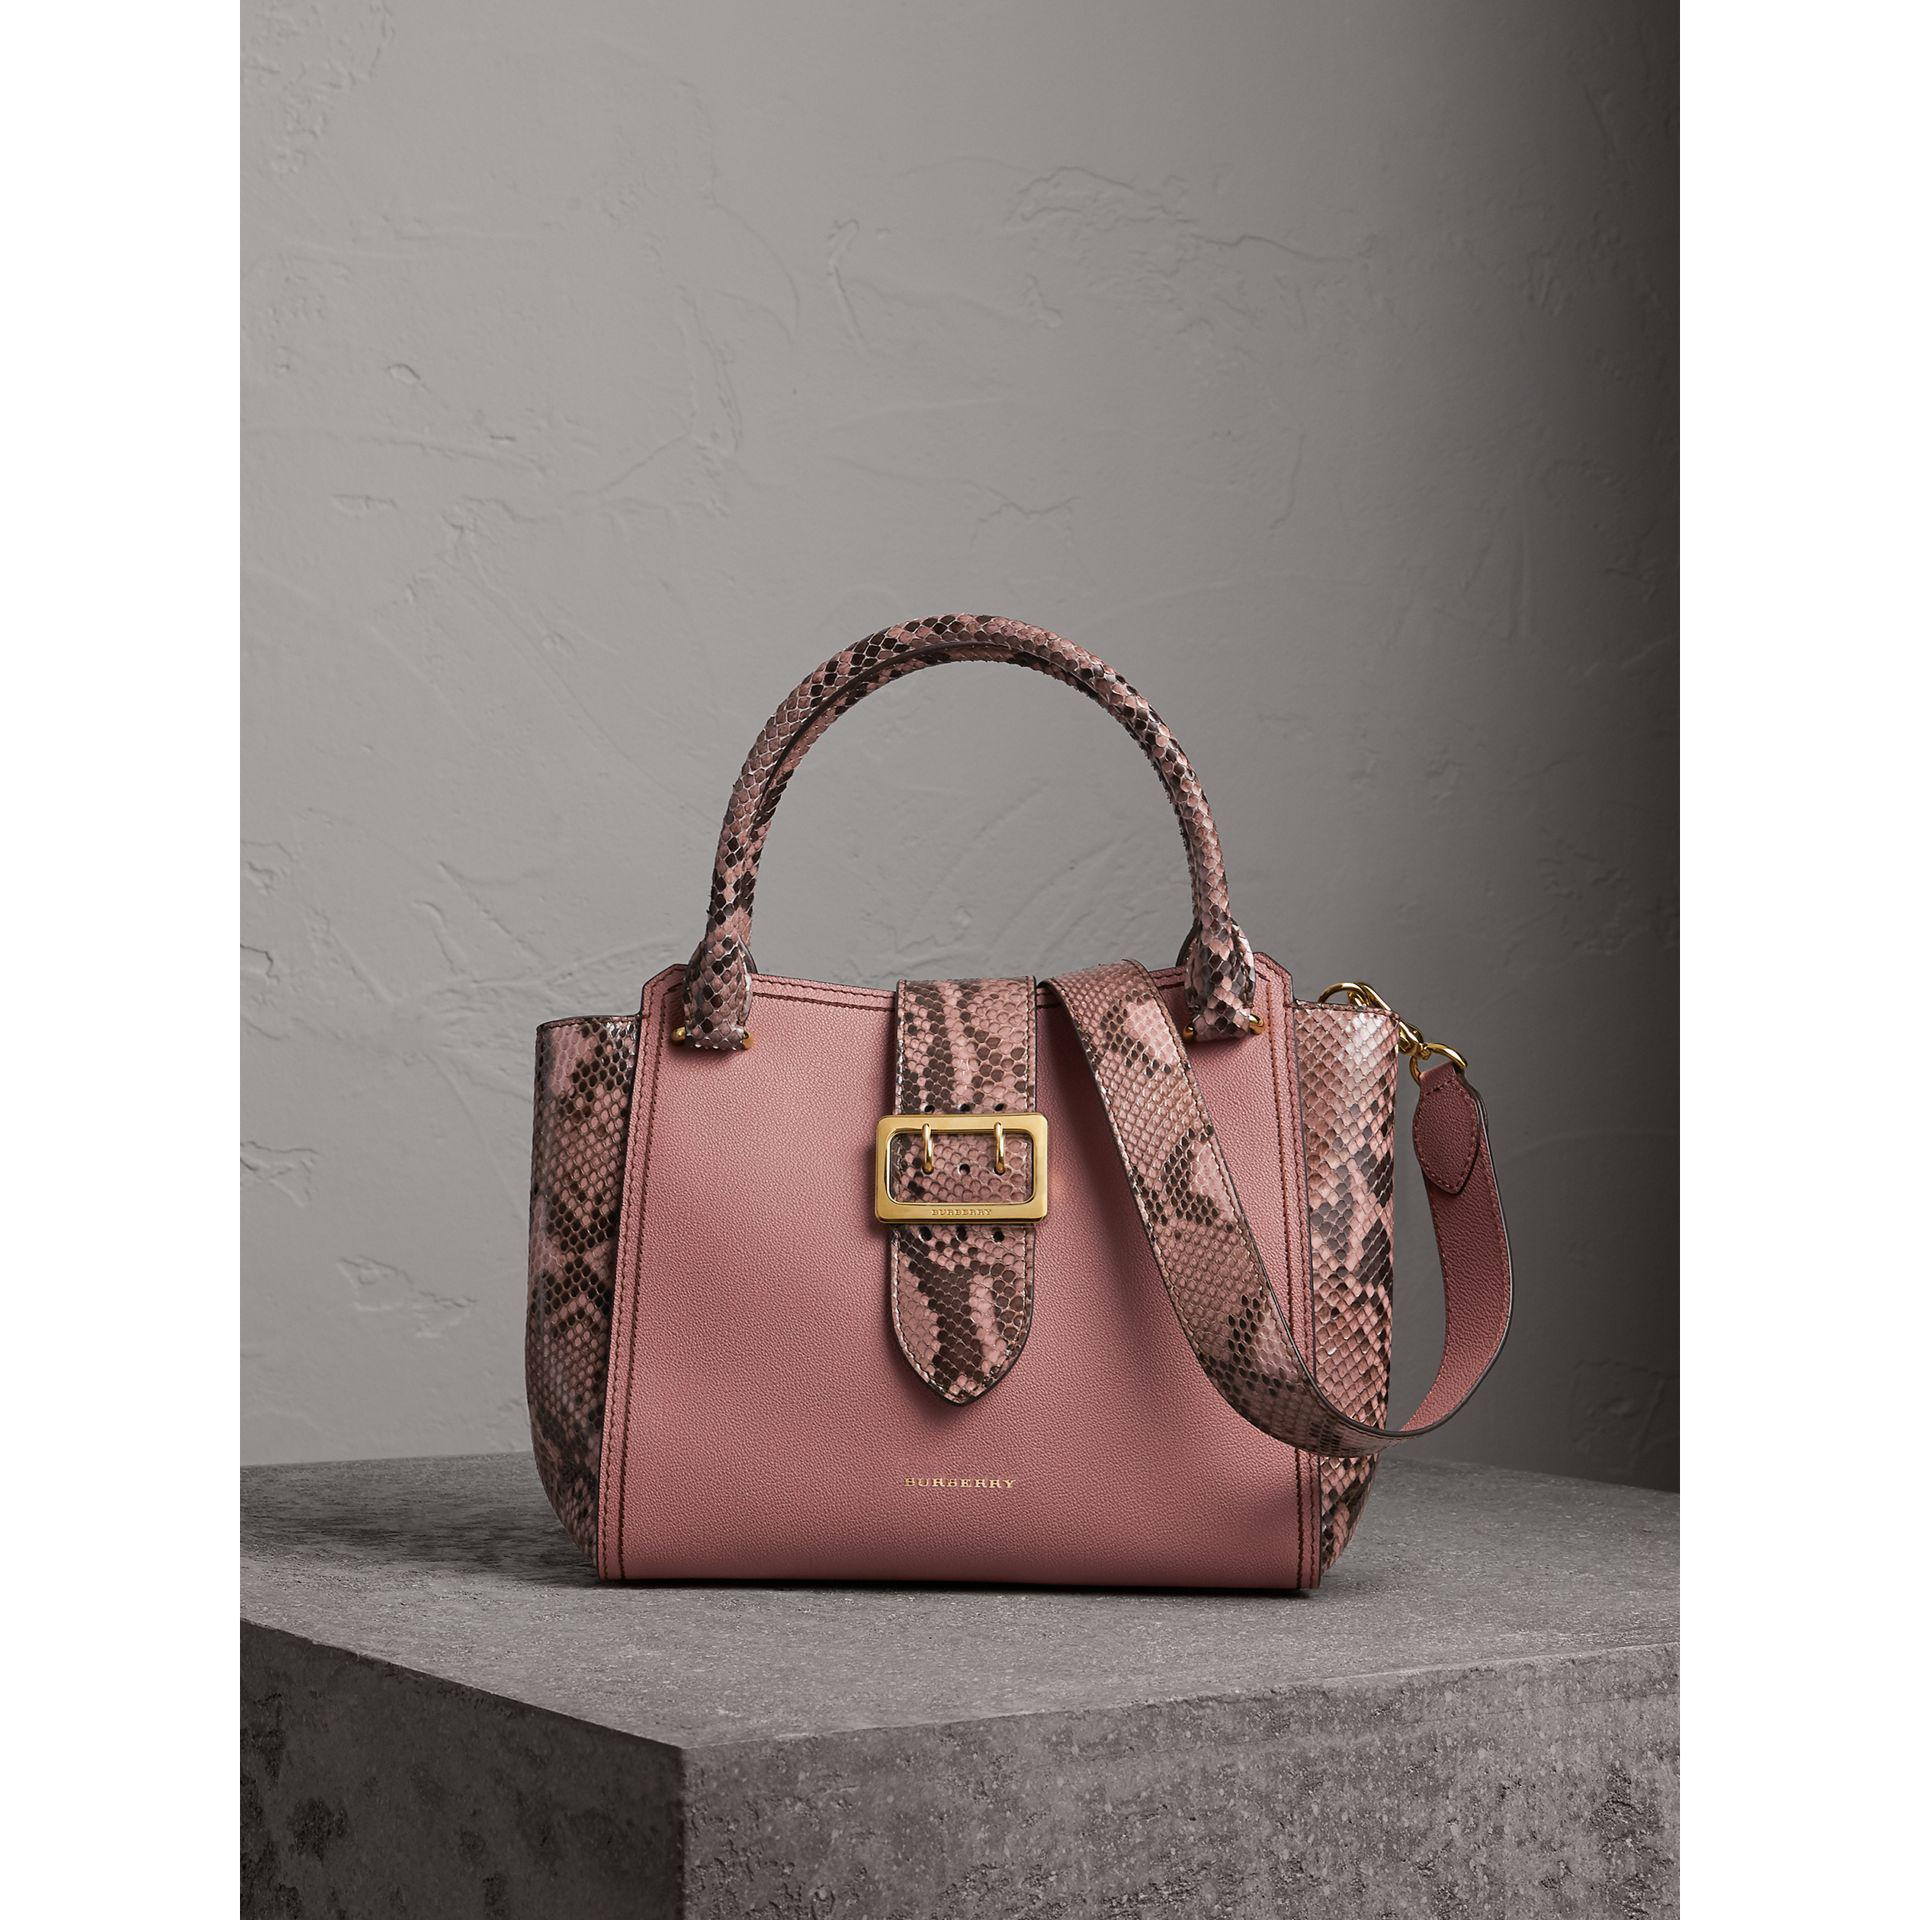 2ee7e419d09a Lyst - Burberry The Medium Buckle Tote In Grainy Leather And Python